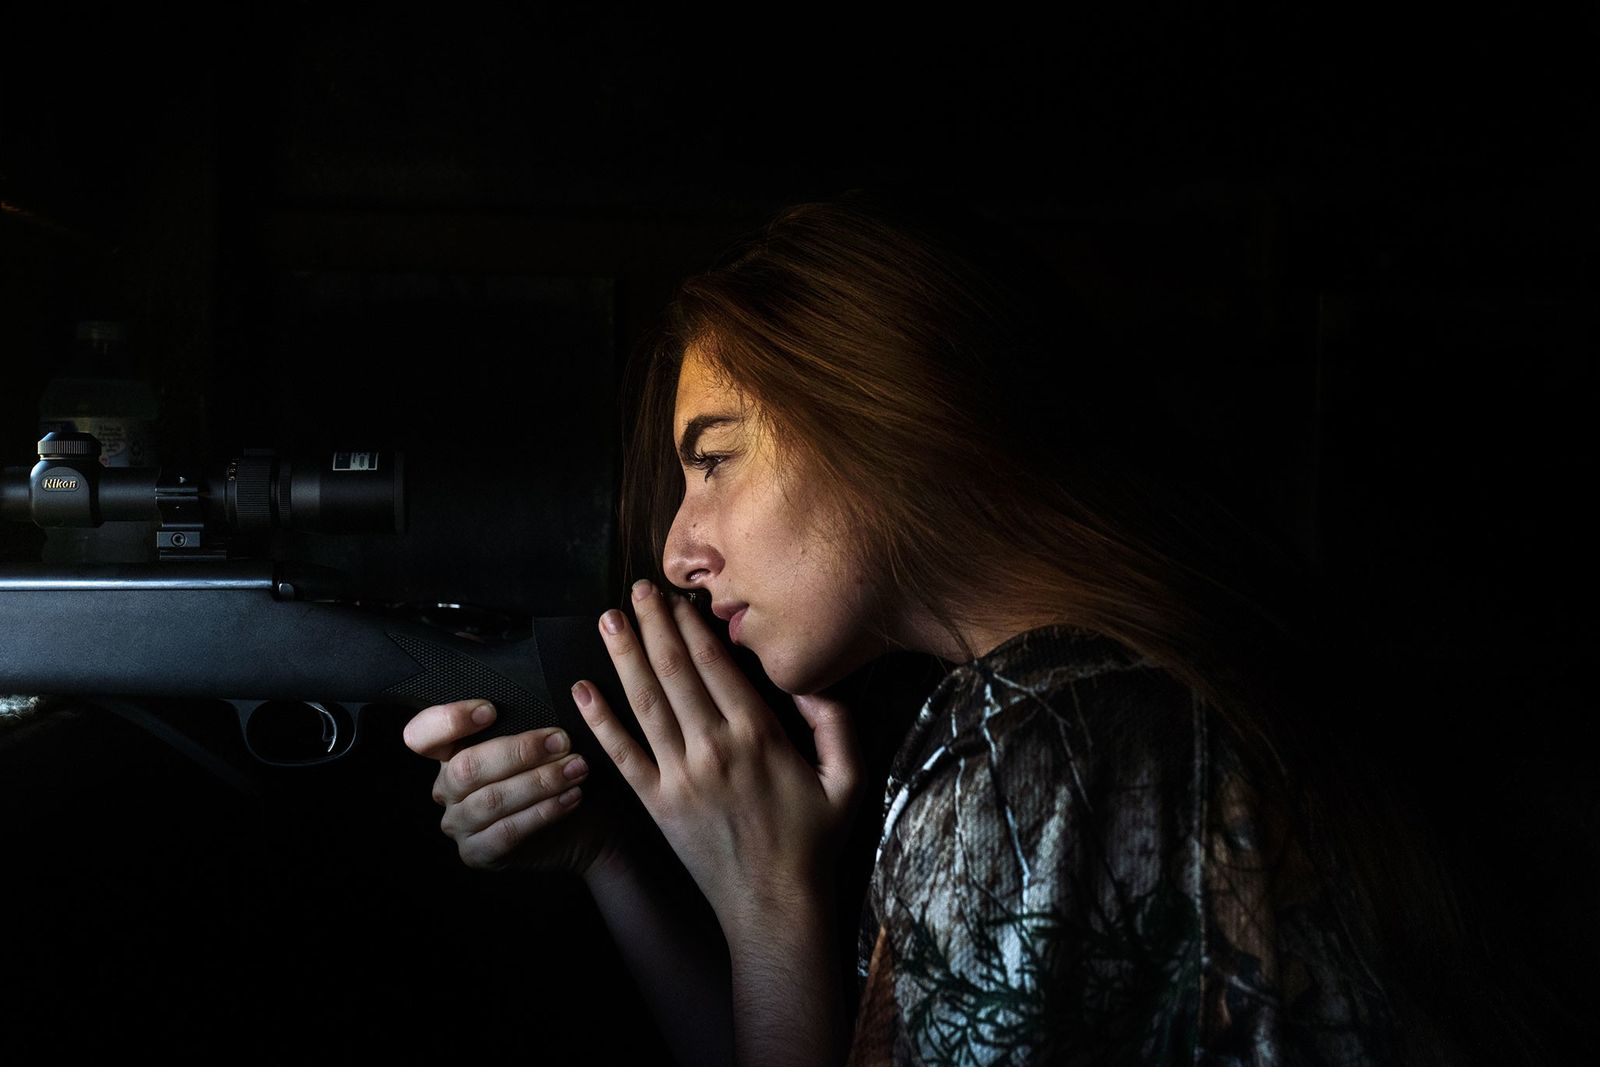 Grace Ingrande, 17, waits for a clear shot at an axis deer in a hunting blind ...